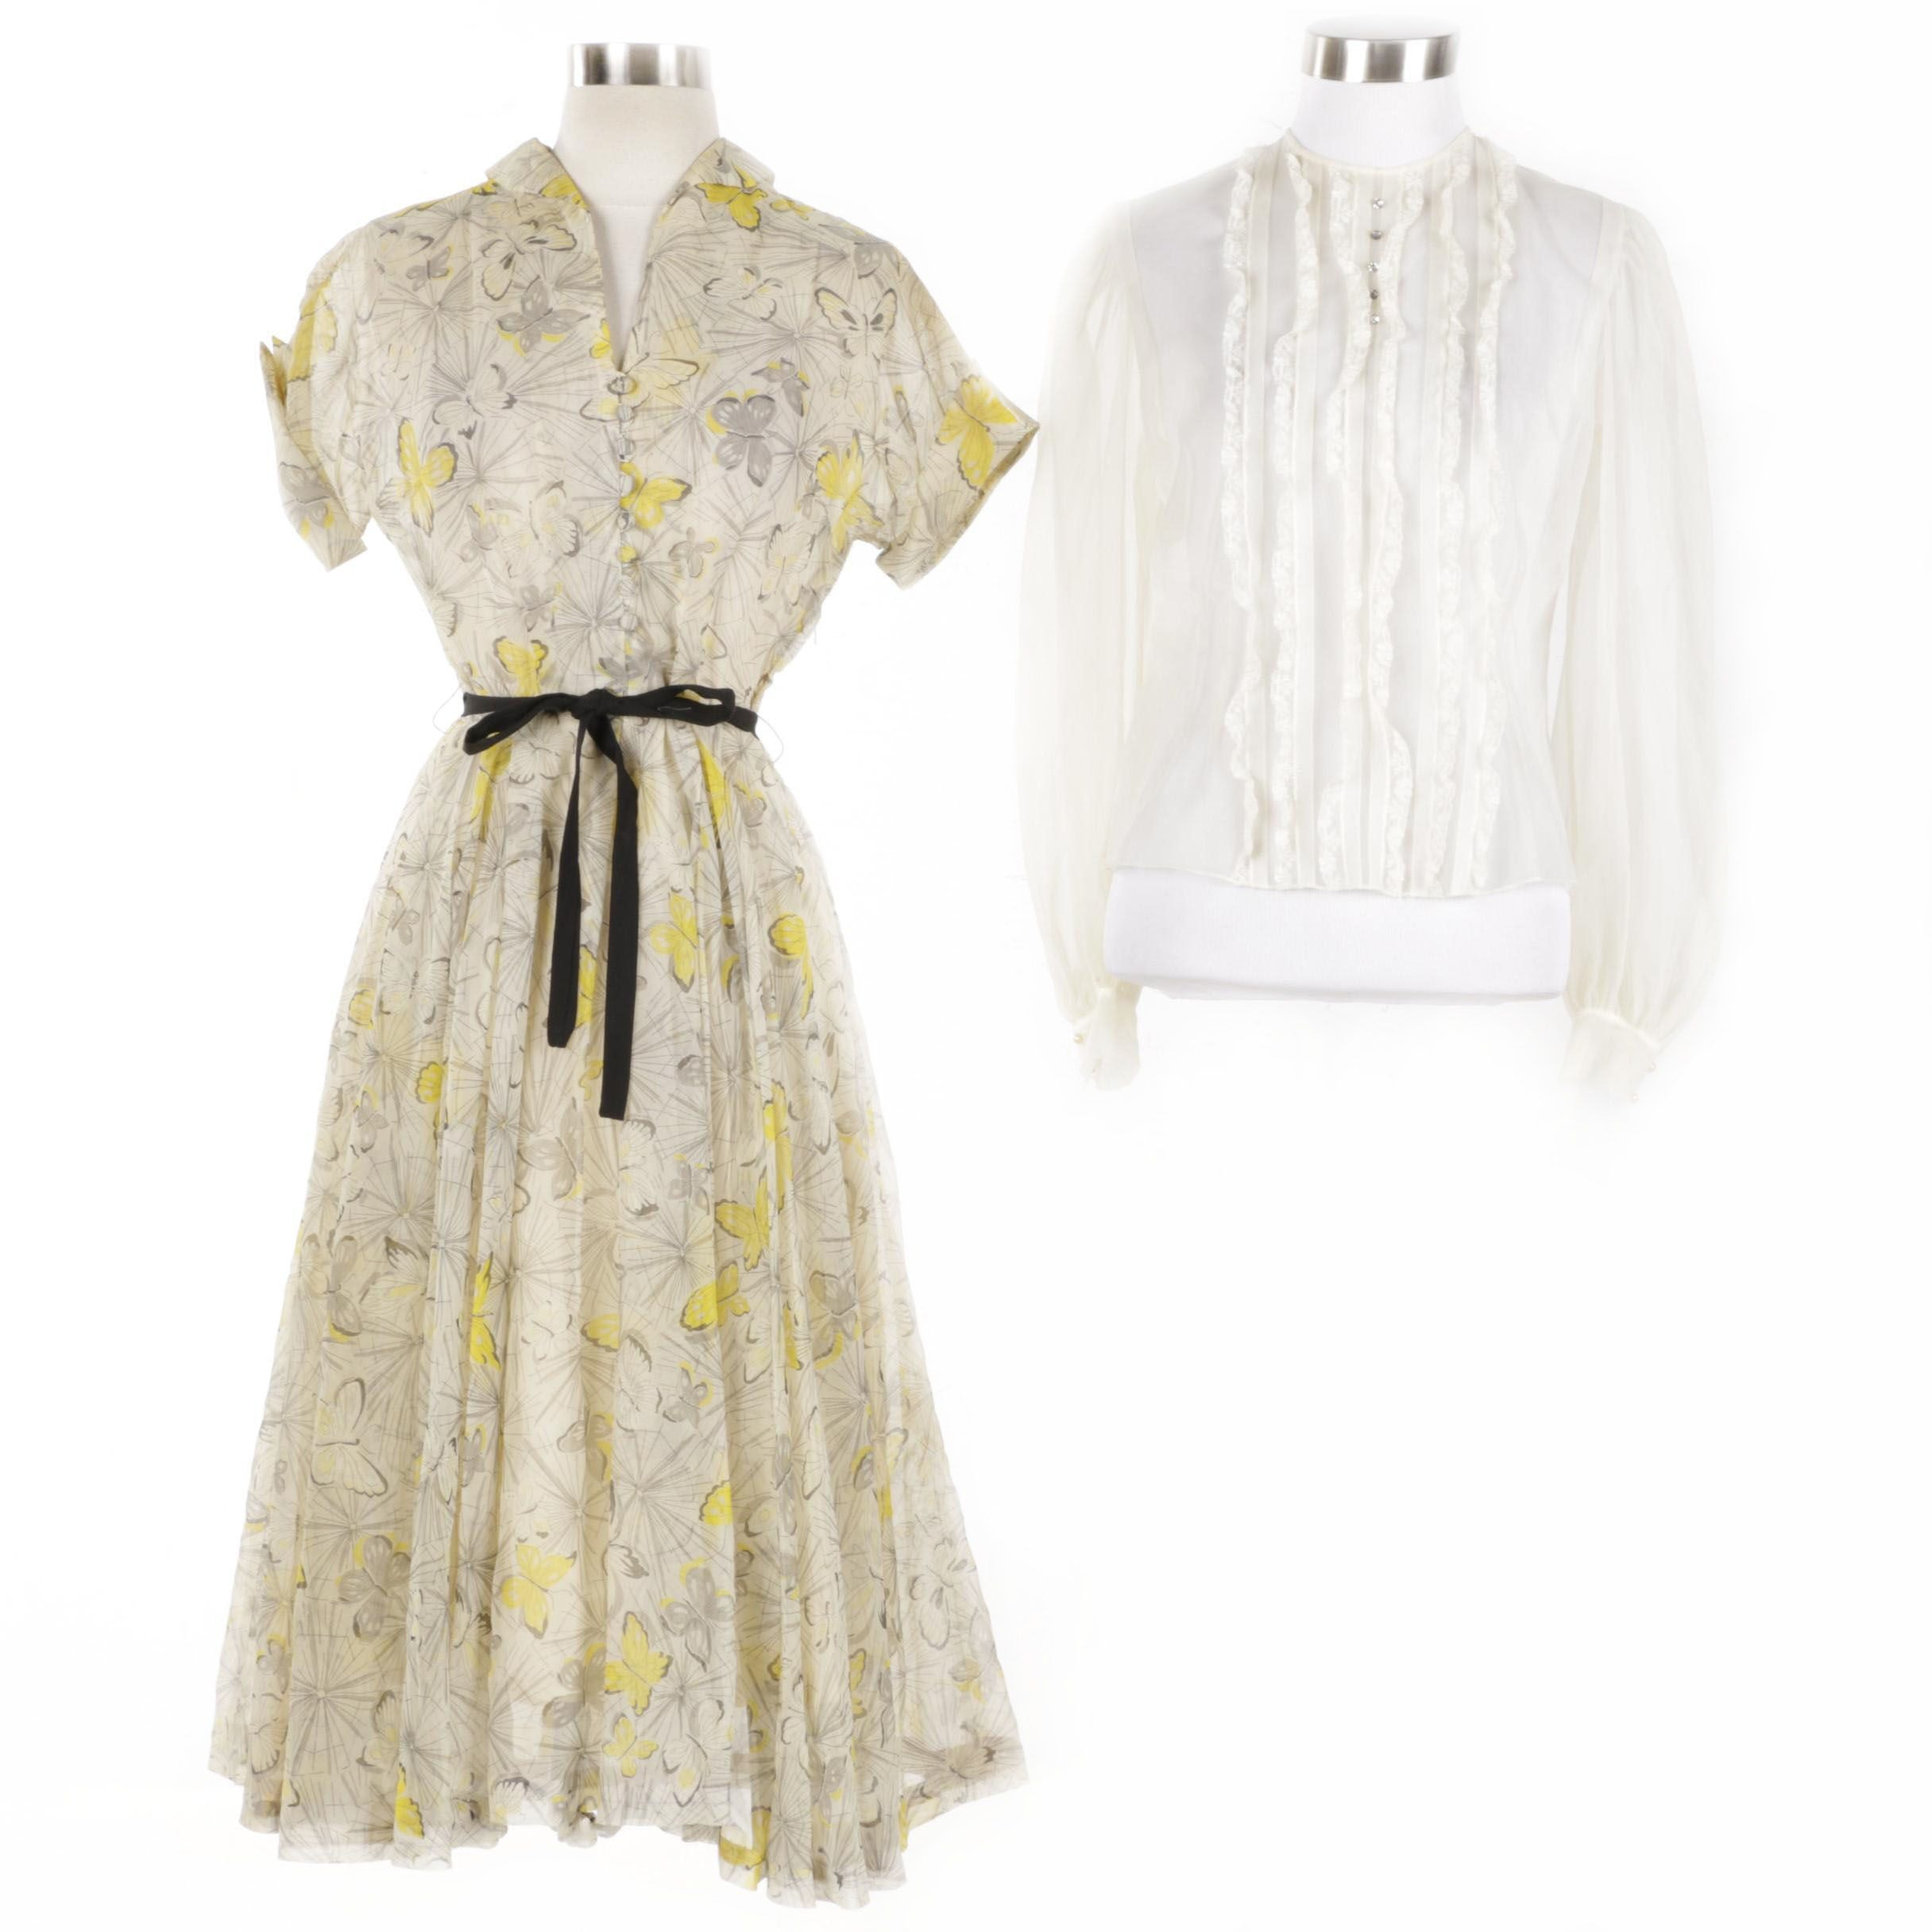 Women's Vintage Dress and Sheer Lace Top